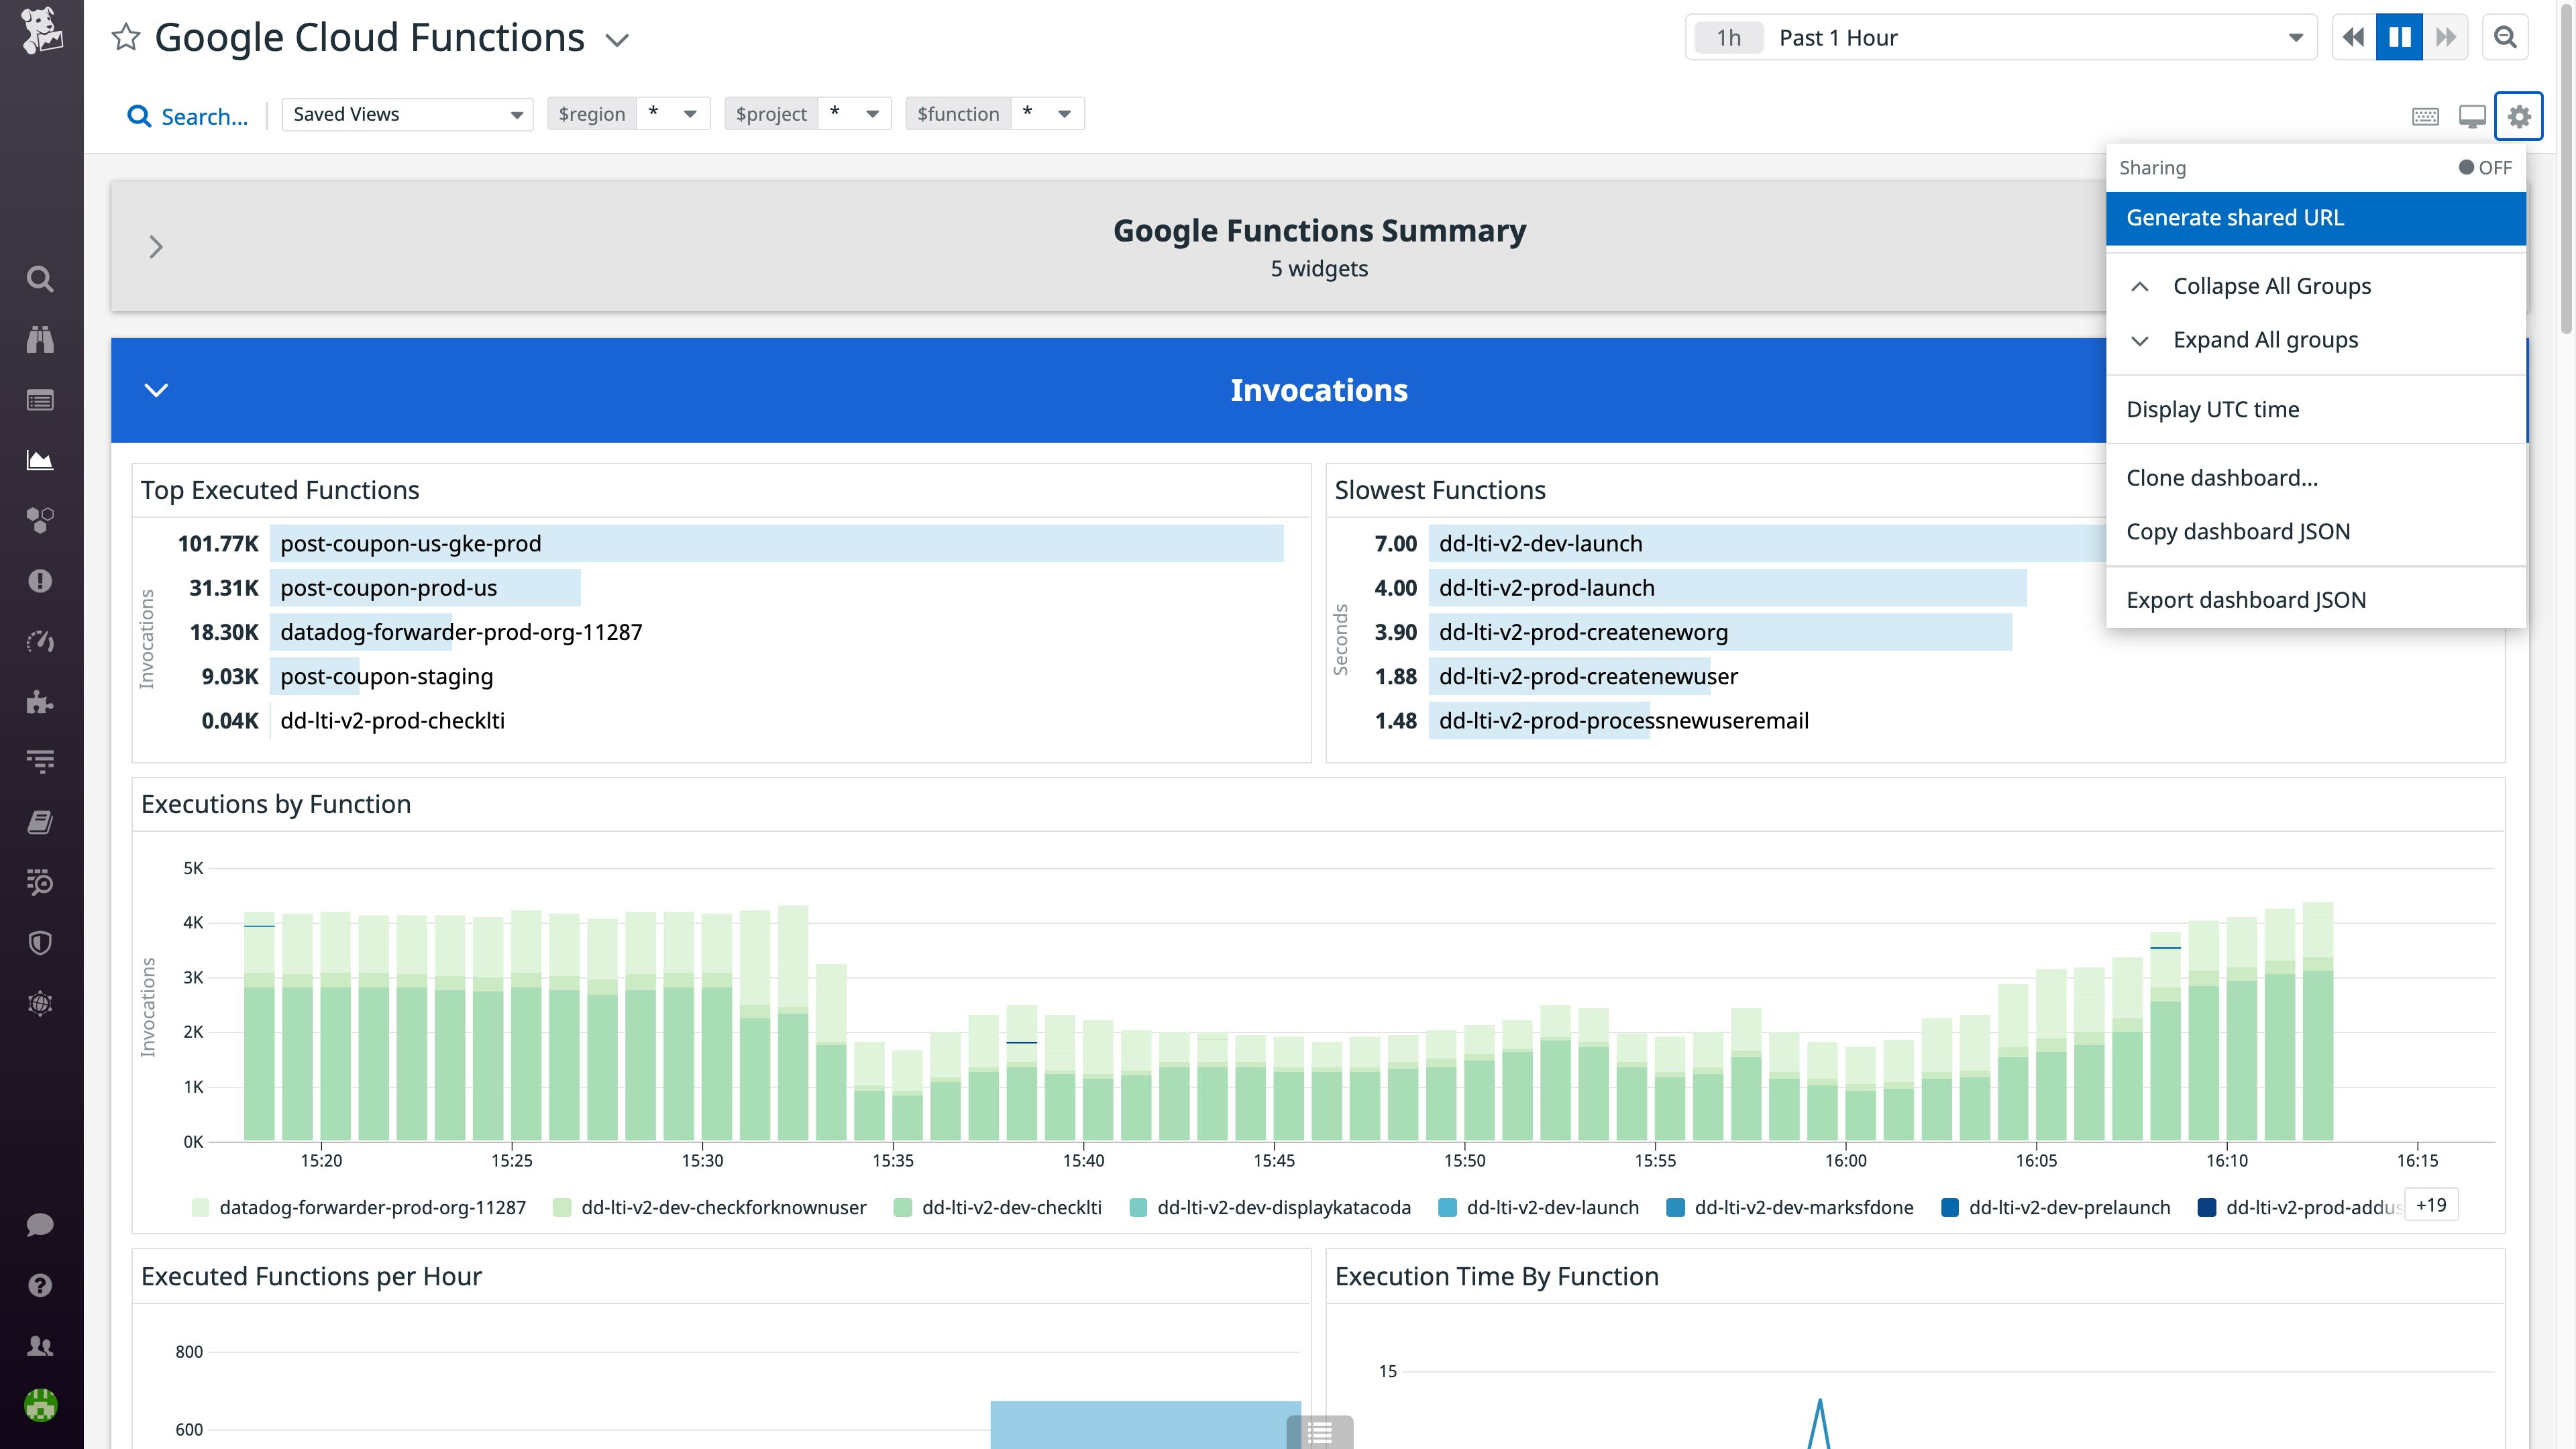 Customize views and visualizations that are relevant to your team